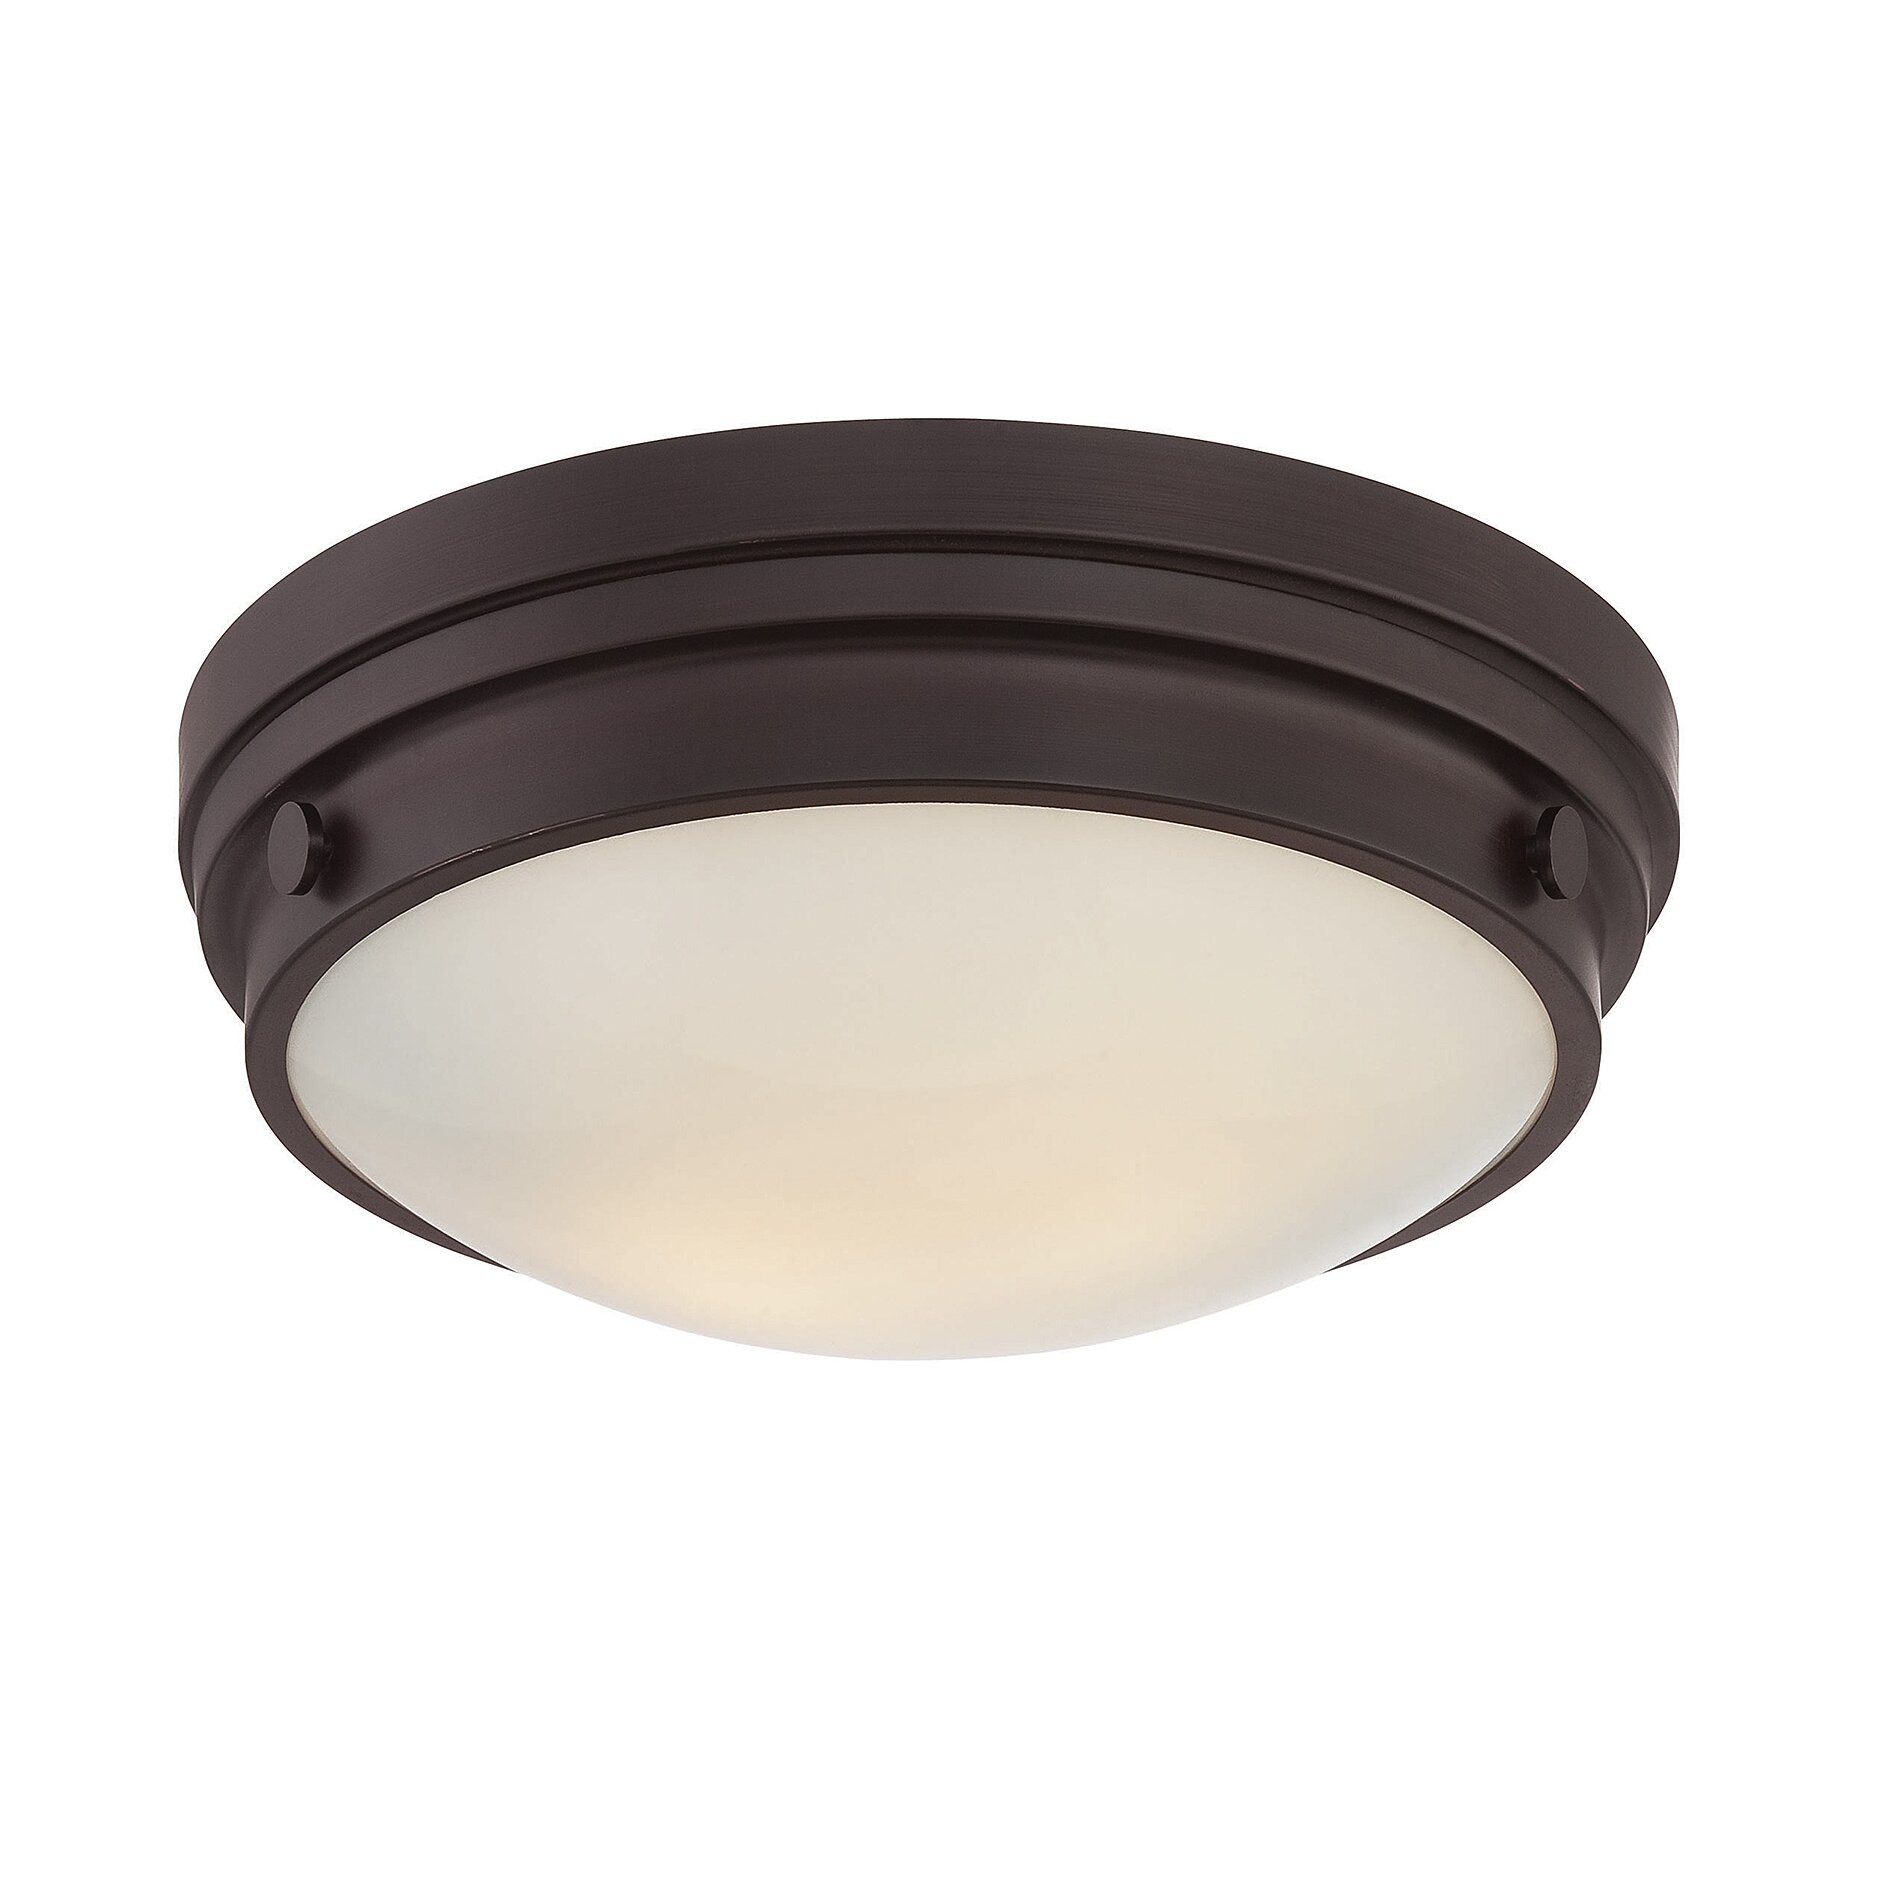 Flush Mount Kitchen Lighting Flush Mount Lighting Youll Love Wayfair